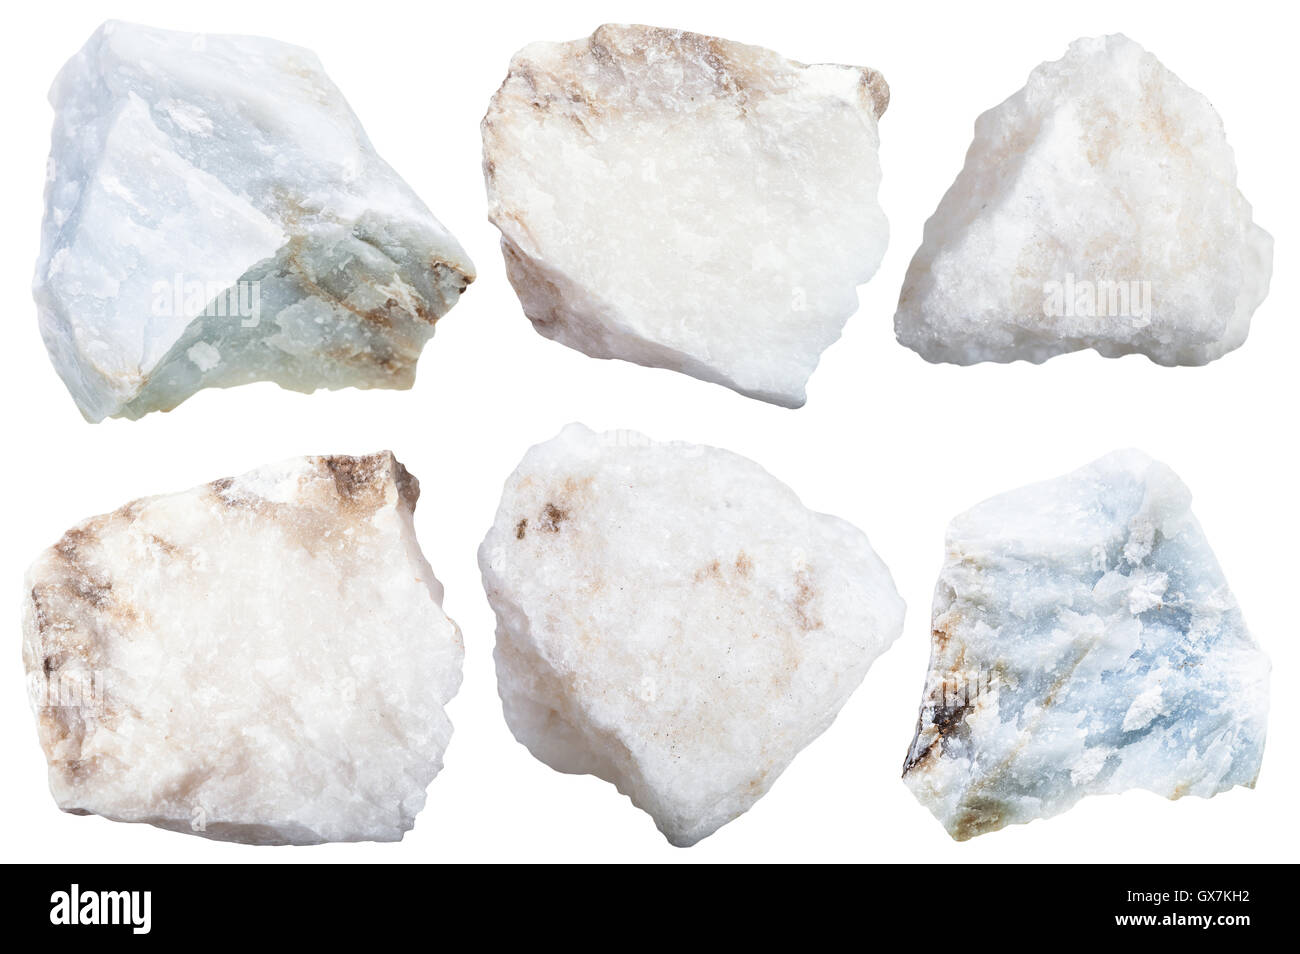 collection from specimens of anhydrite stone isolated on white background - Stock Image